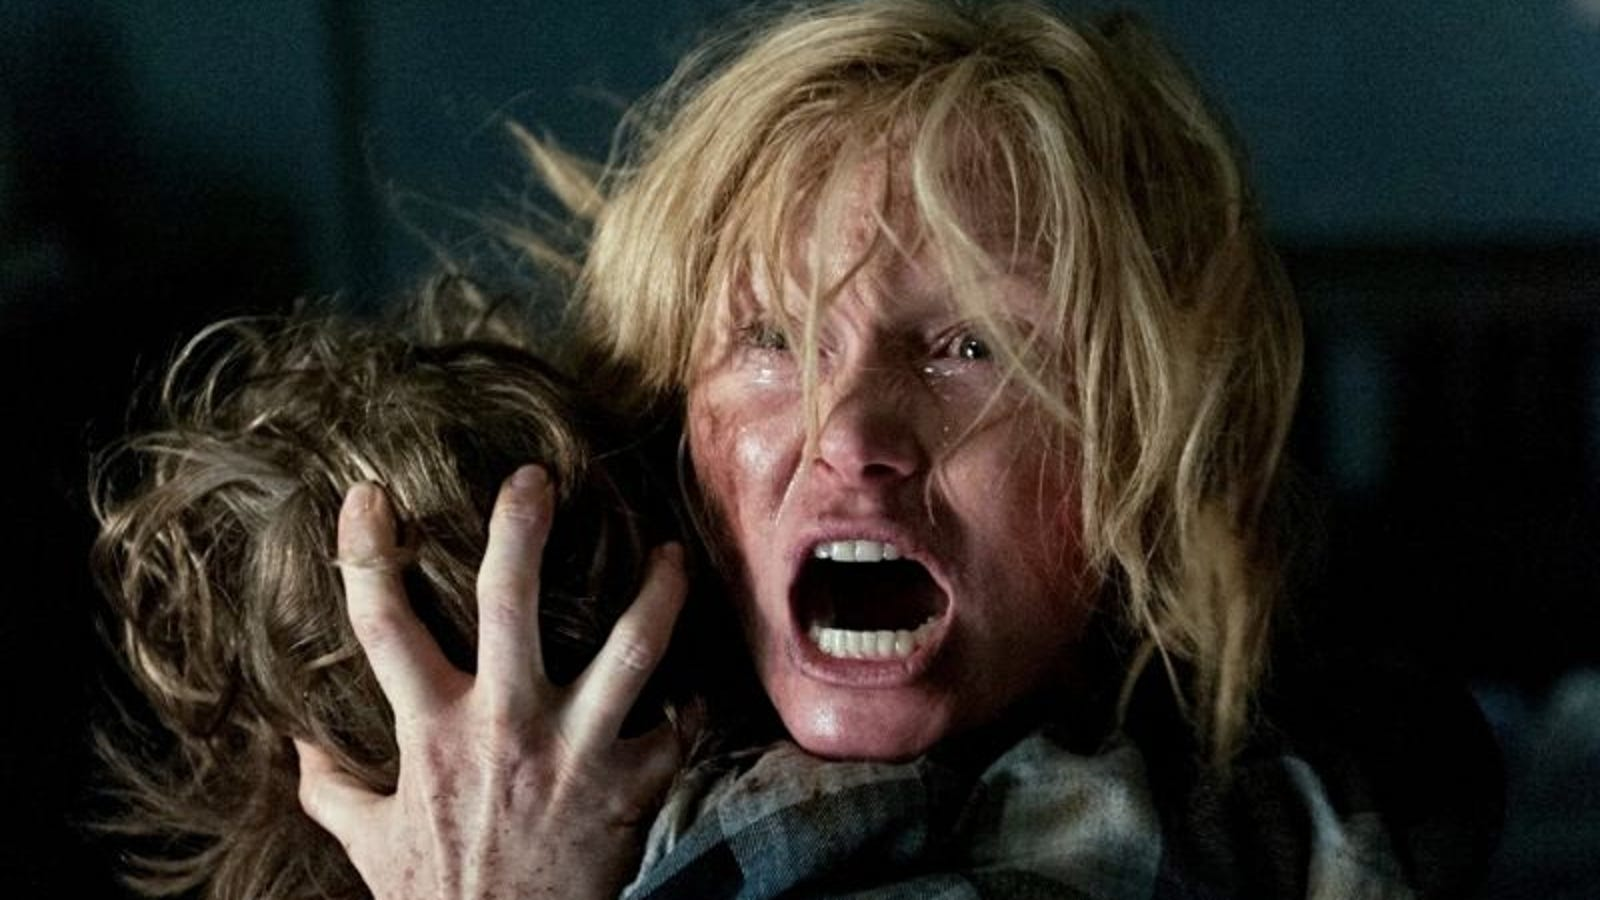 The 20 Scariest Horror Movies of the Last Decade